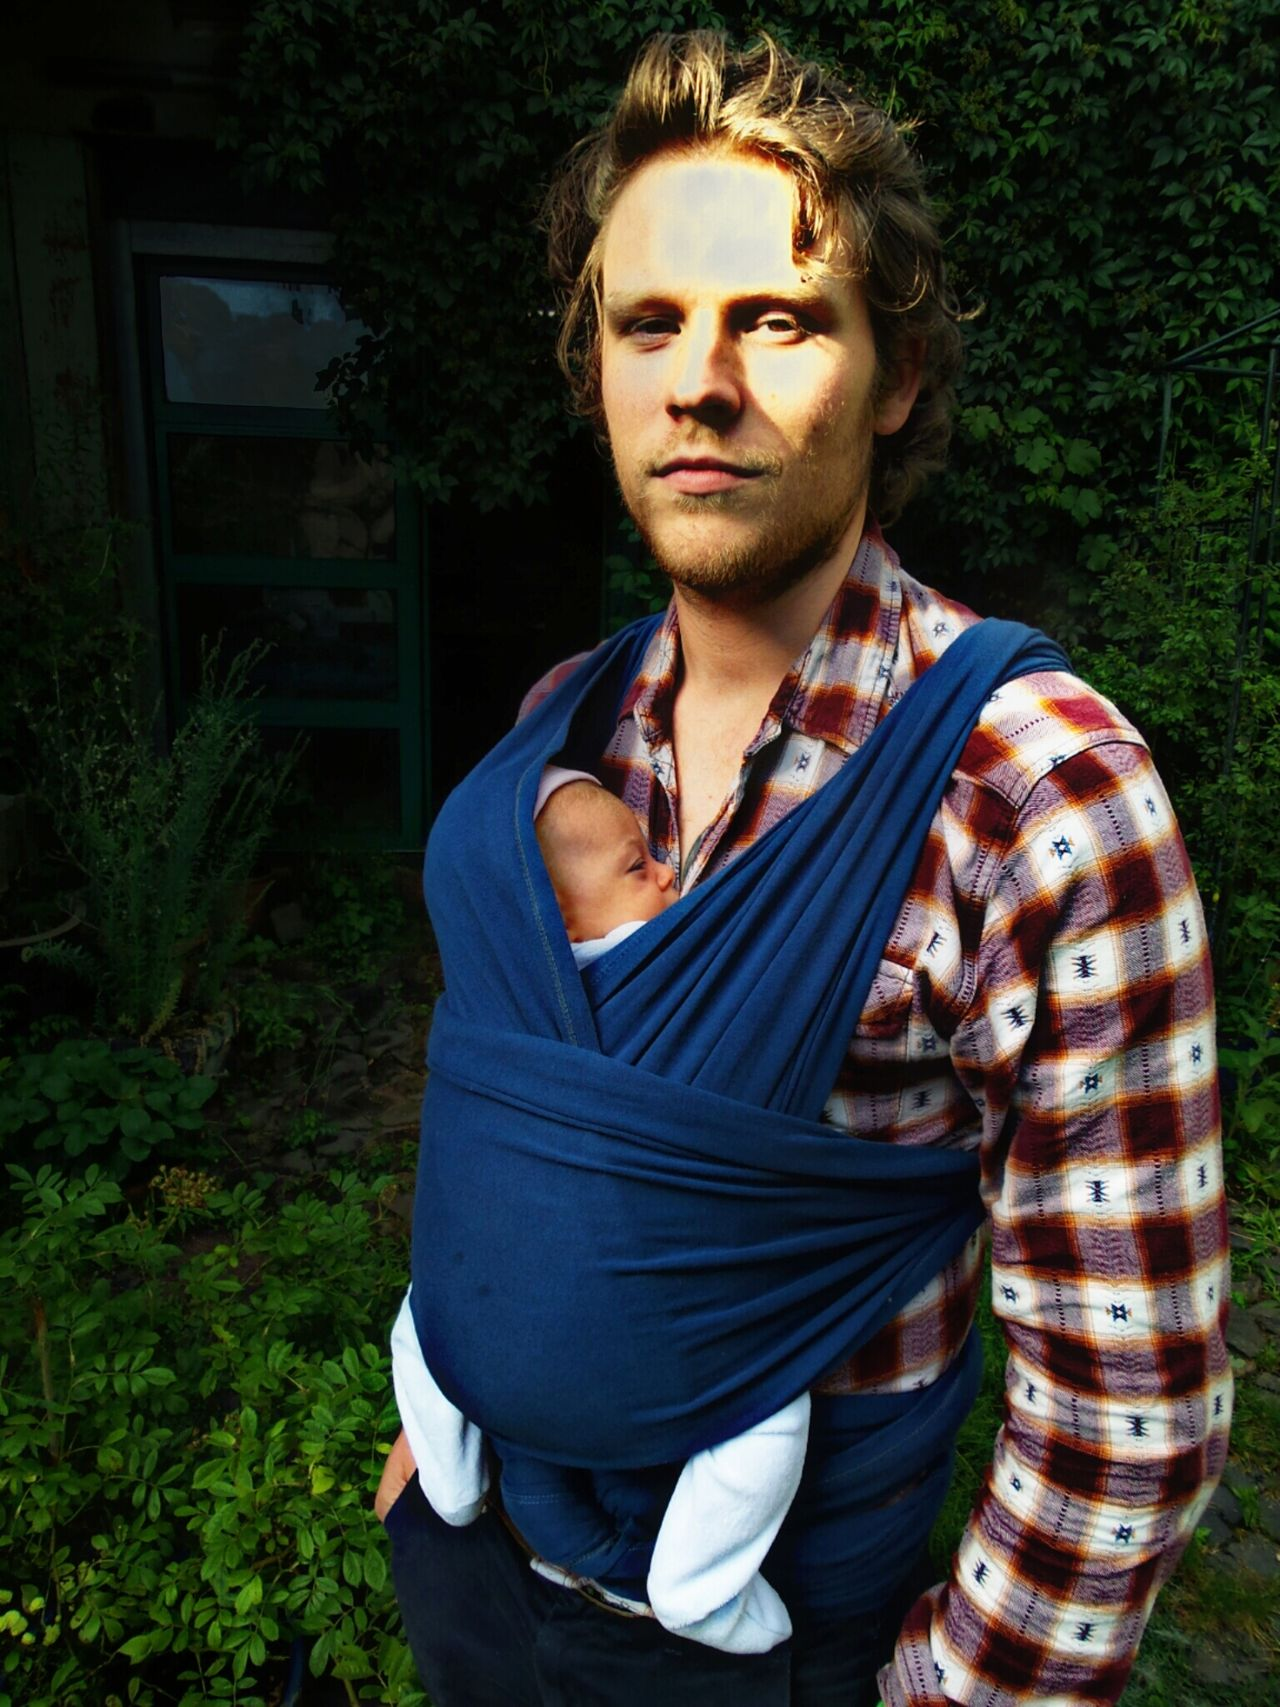 Daddy Cool  No Smile Young Father With Babygirl In A Sling Standing In The Garden Green Plants In The Background Portrait Of A Young Man Baby's First Days In The Backyard Langenselbold Germany🇩🇪 My New Family Fatherhood Moments